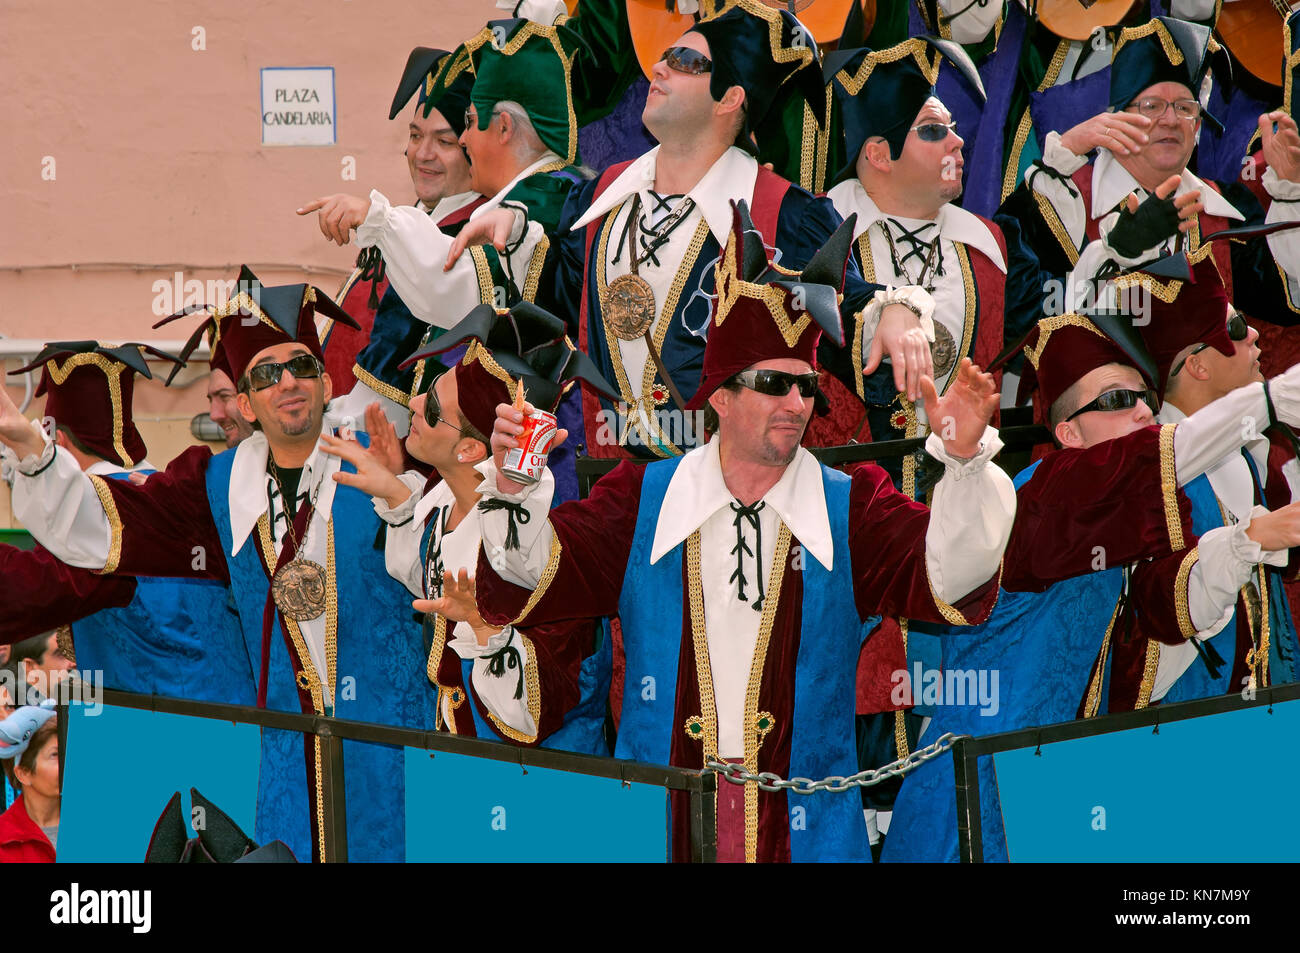 Carnival, Choir - show on the Plaza Candelaria, Cadiz, Region of Andalusia, Spain, Europe - Stock Image